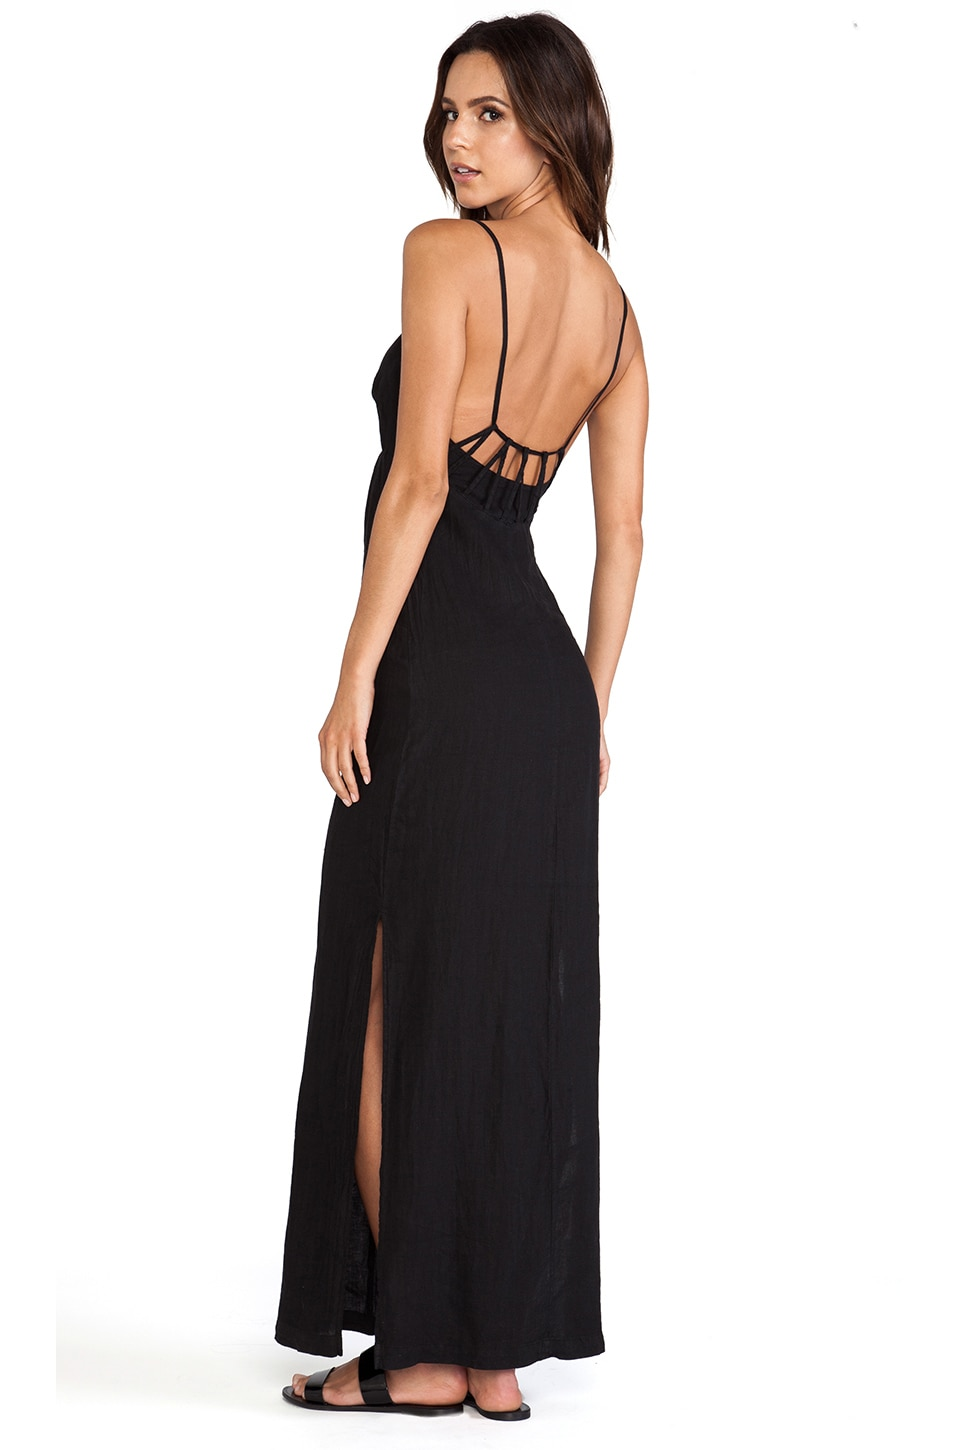 SOLOW So Low Loop Back Maxi Dress in Black